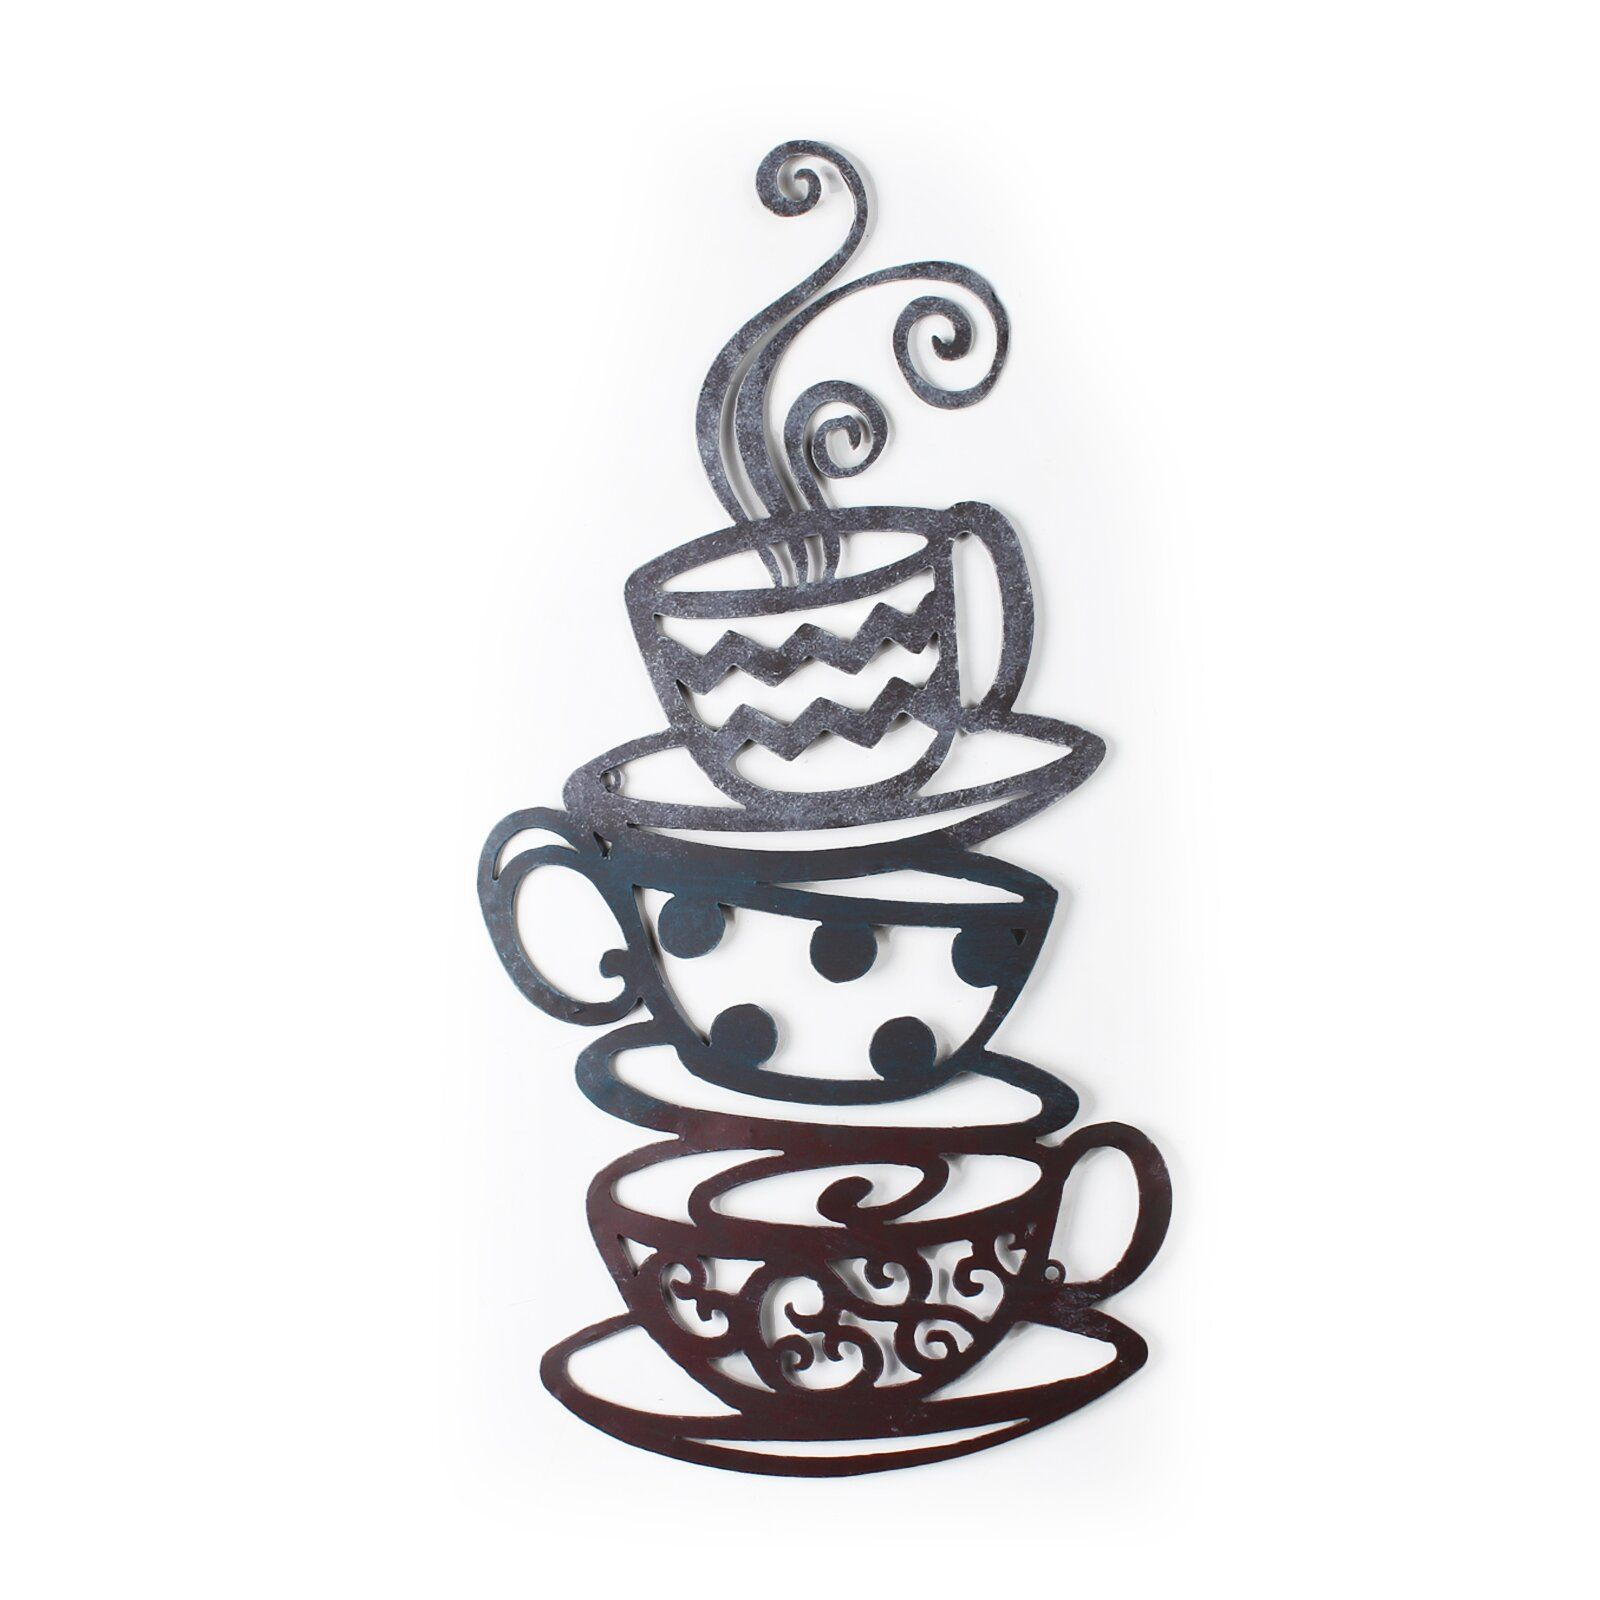 Decorative Three Stacked Coffee Tea Cups Iron Widget Wall Inside Metal Wall Decor By Winston Porter (Photo 10 of 30)